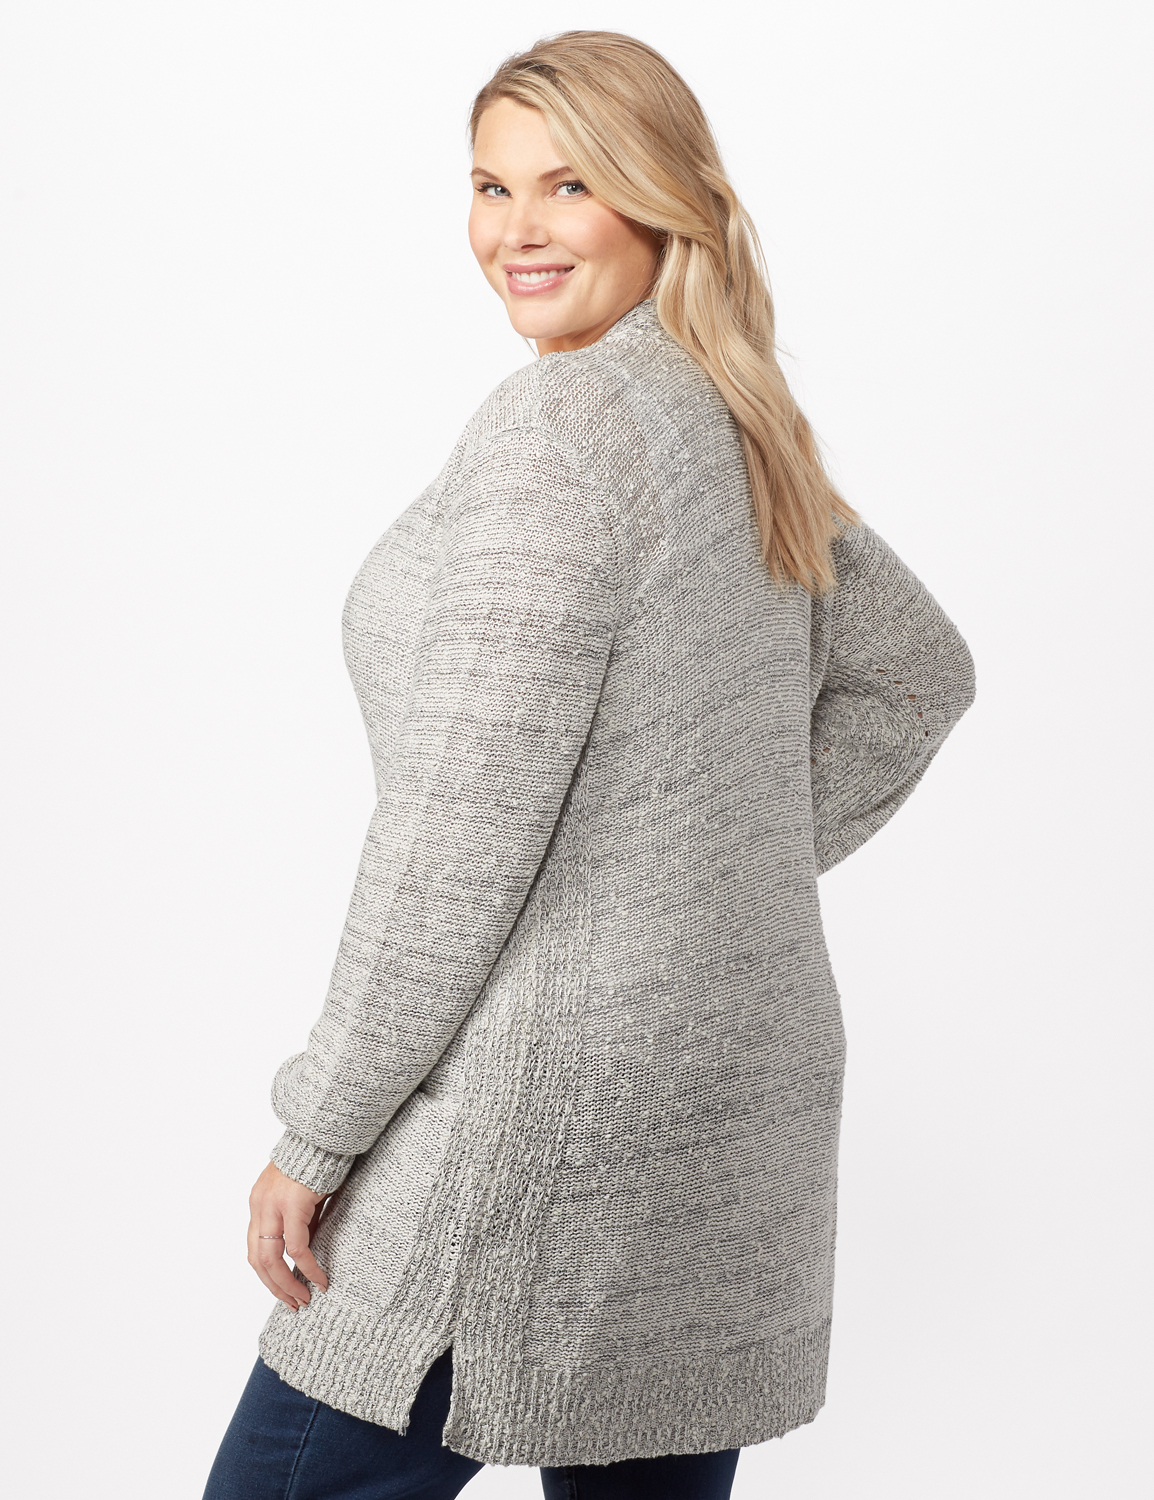 Textured Cardigan with Pointelle Detail -Ivory/black - Back